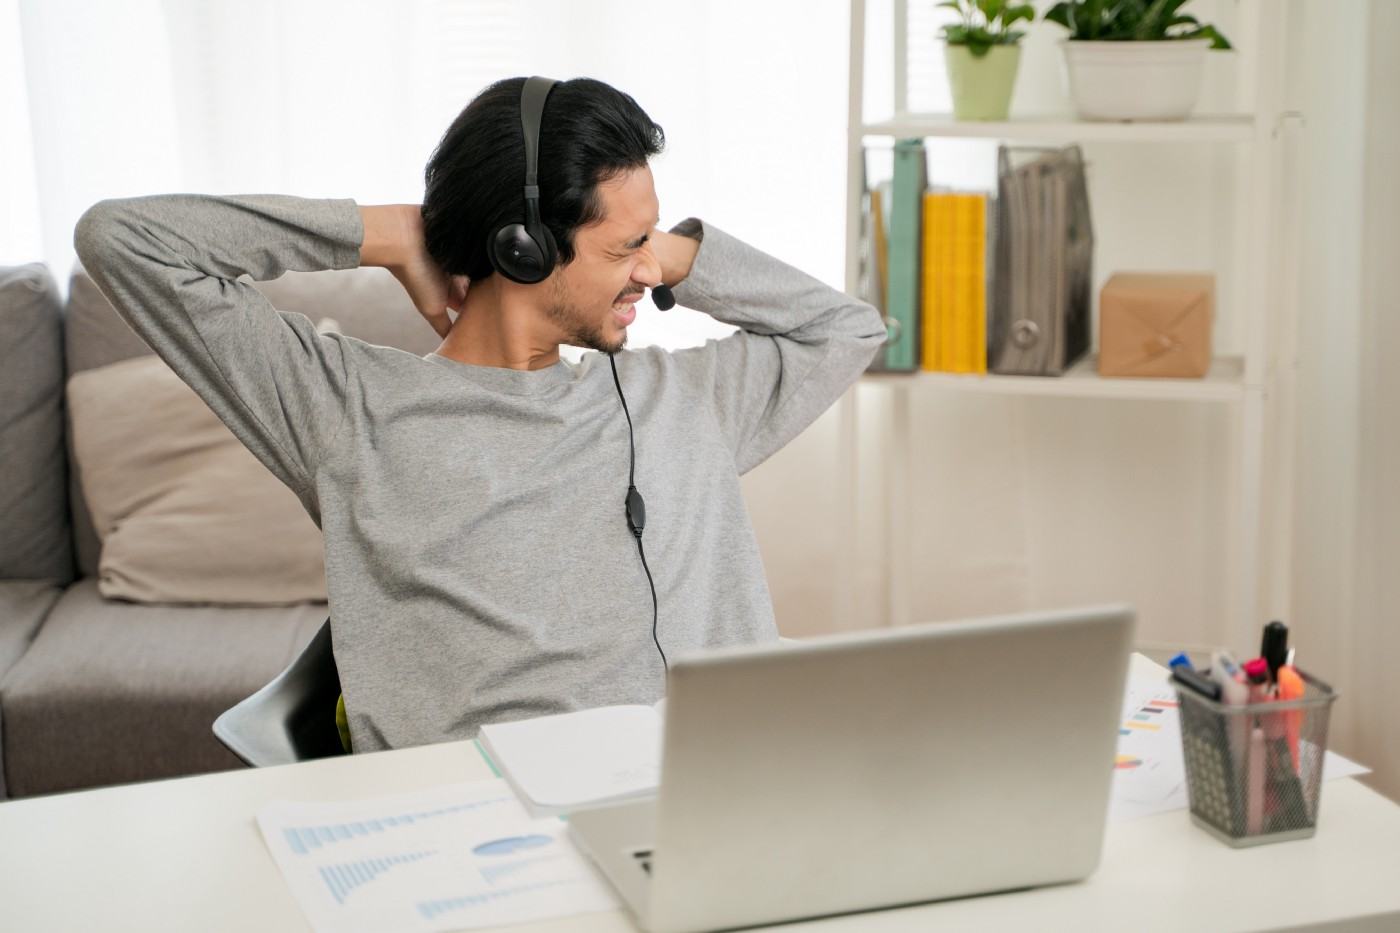 A young man experiencing stress after a video conference on his laptop, working from home.